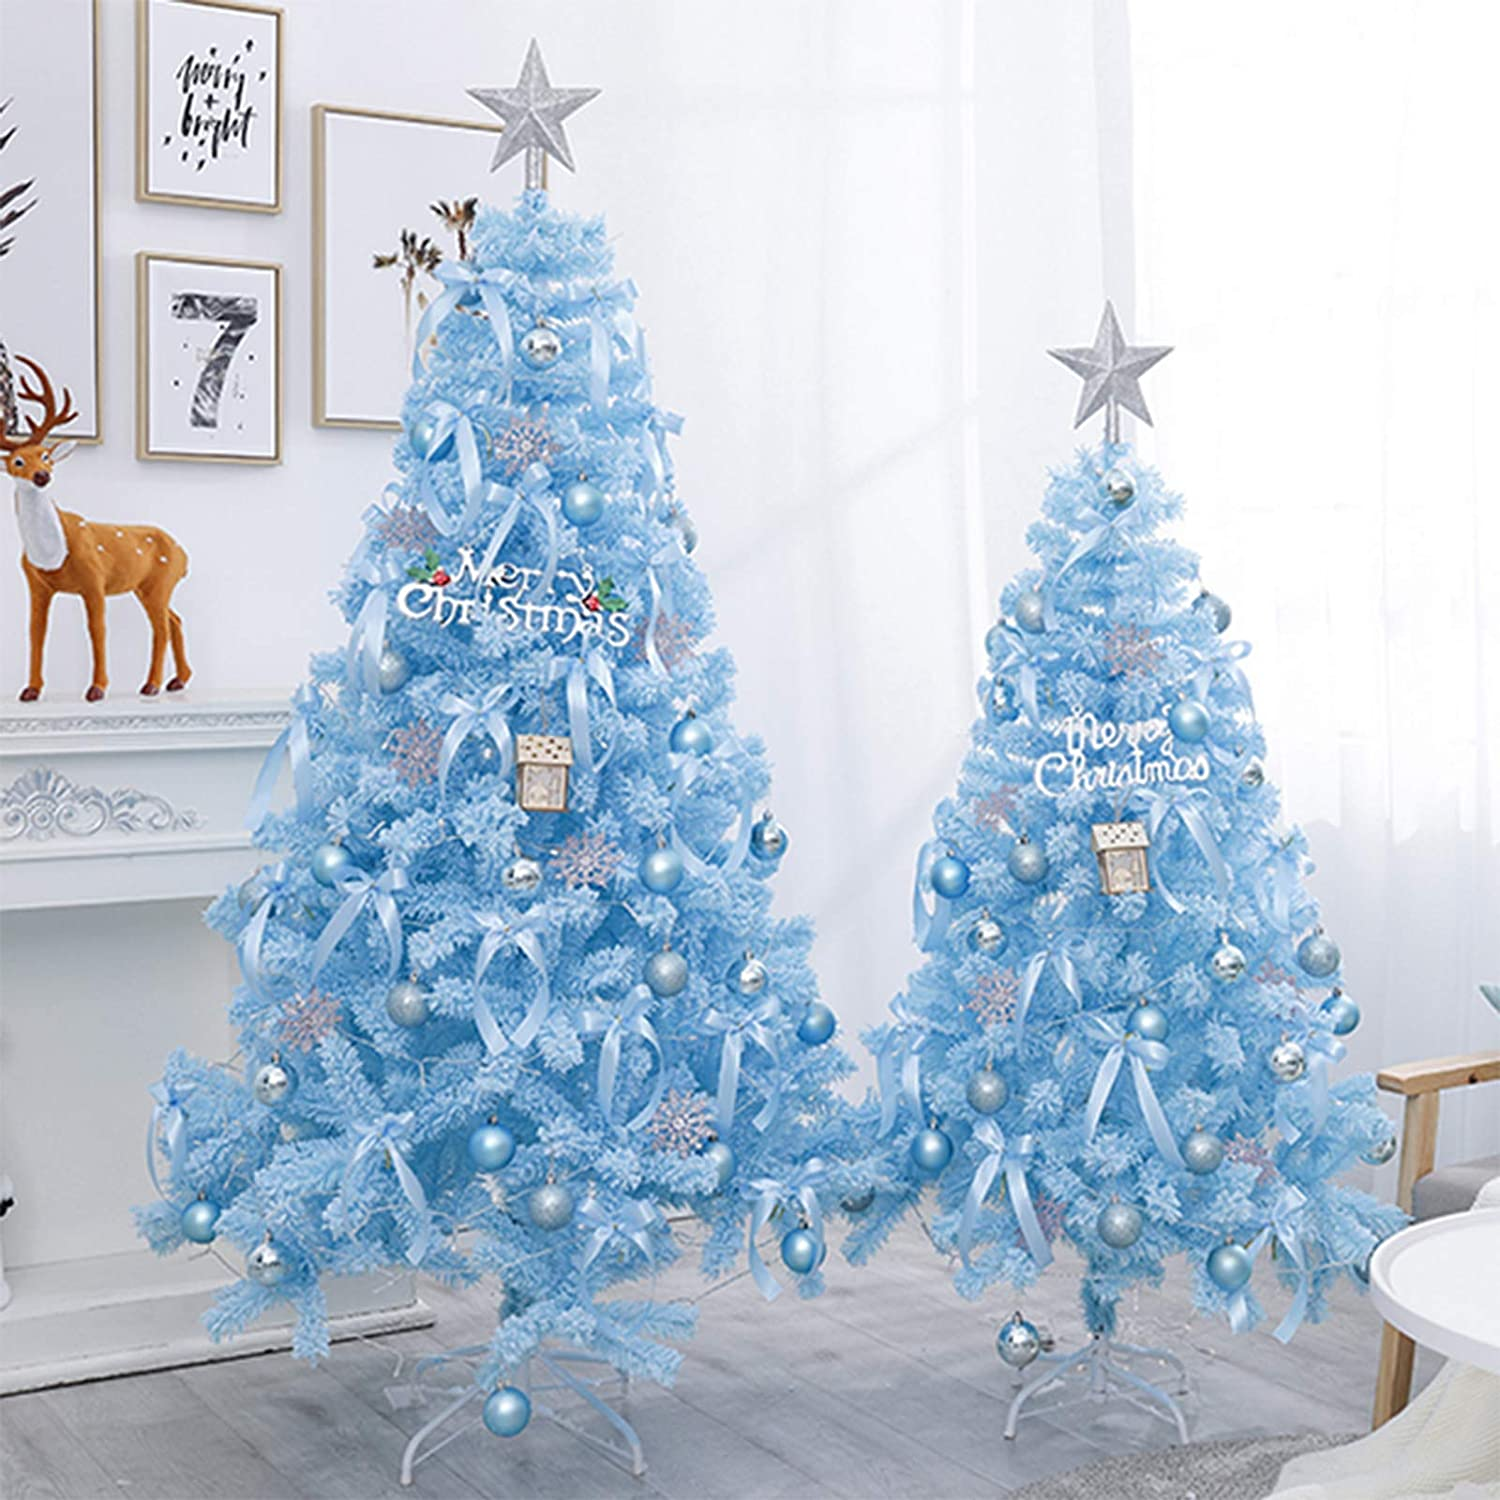 CYQ Easy Install Christmas Tree for Indoor Outdoor Christmas Decorations, Blue Bushy Christmas Tree, Deluxe Artificial Tree with Metal Stand